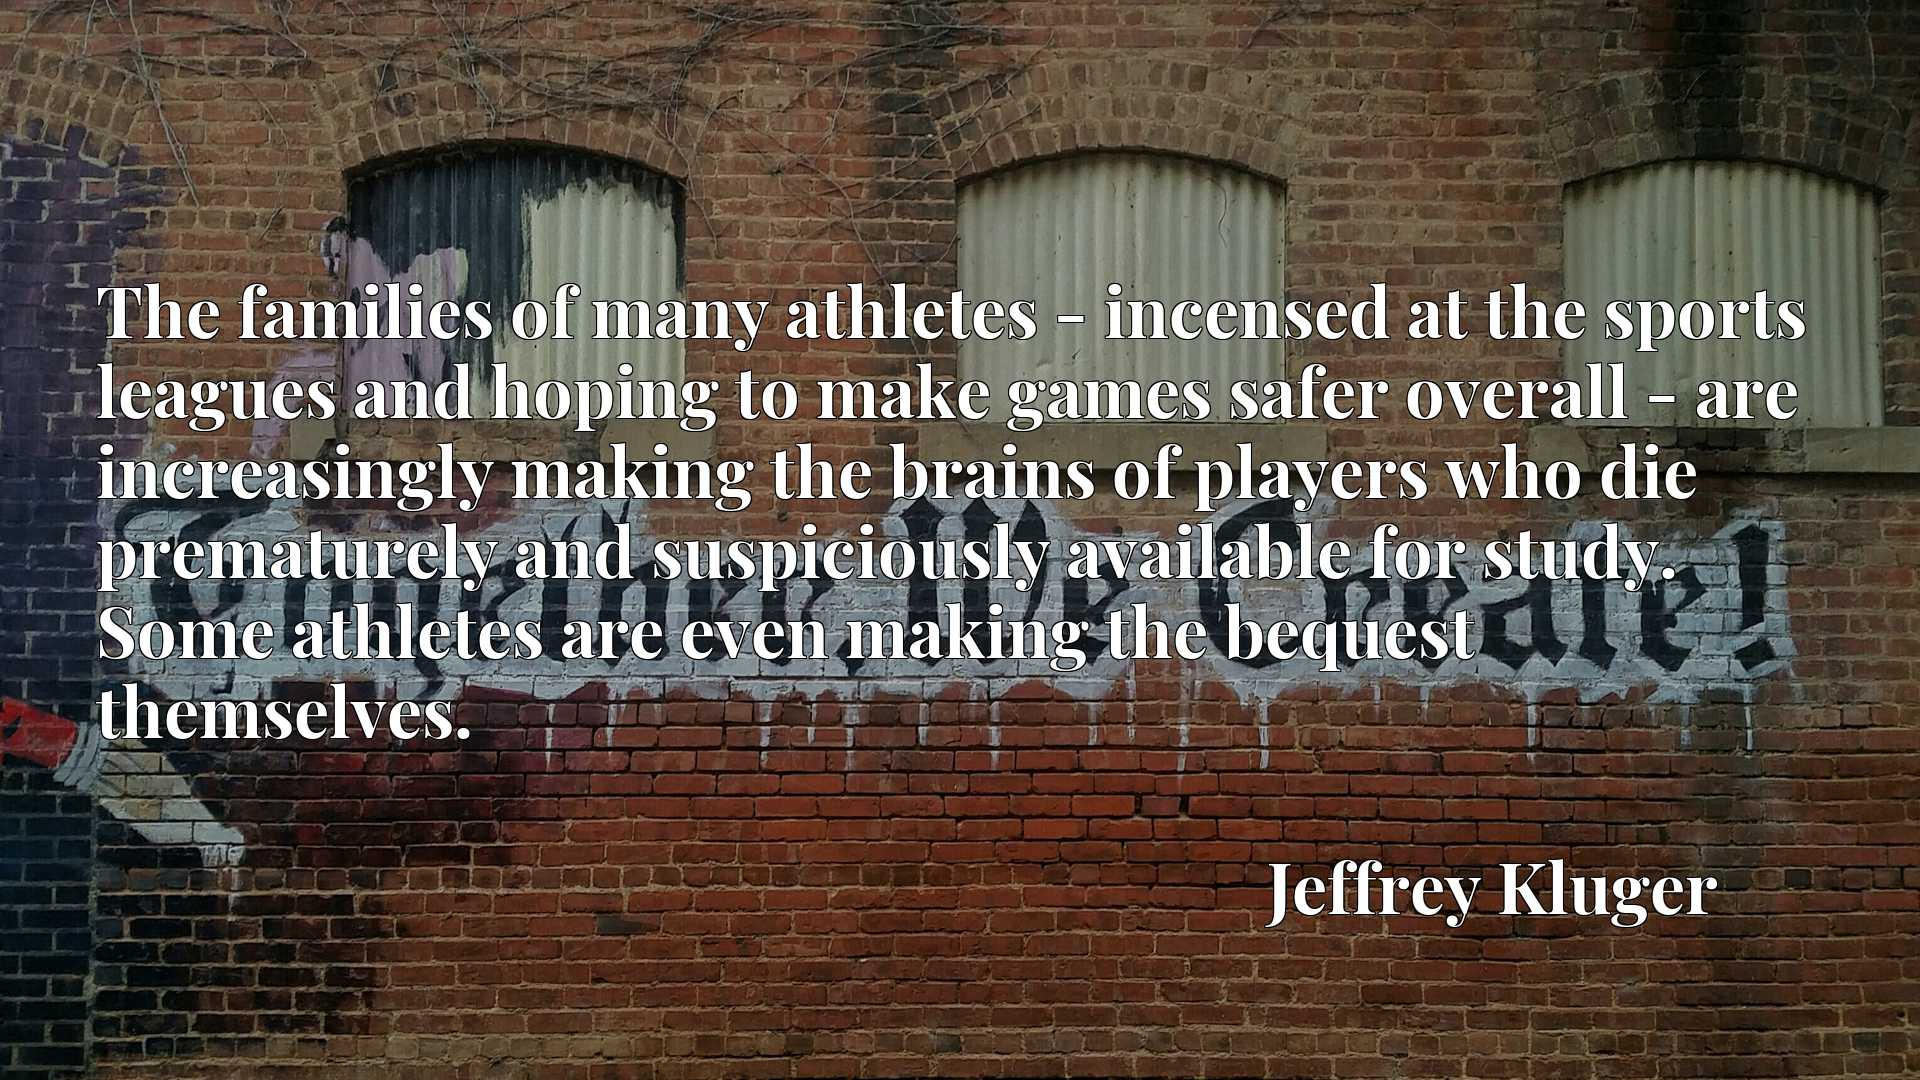 The families of many athletes - incensed at the sports leagues and hoping to make games safer overall - are increasingly making the brains of players who die prematurely and suspiciously available for study. Some athletes are even making the bequest themselves.